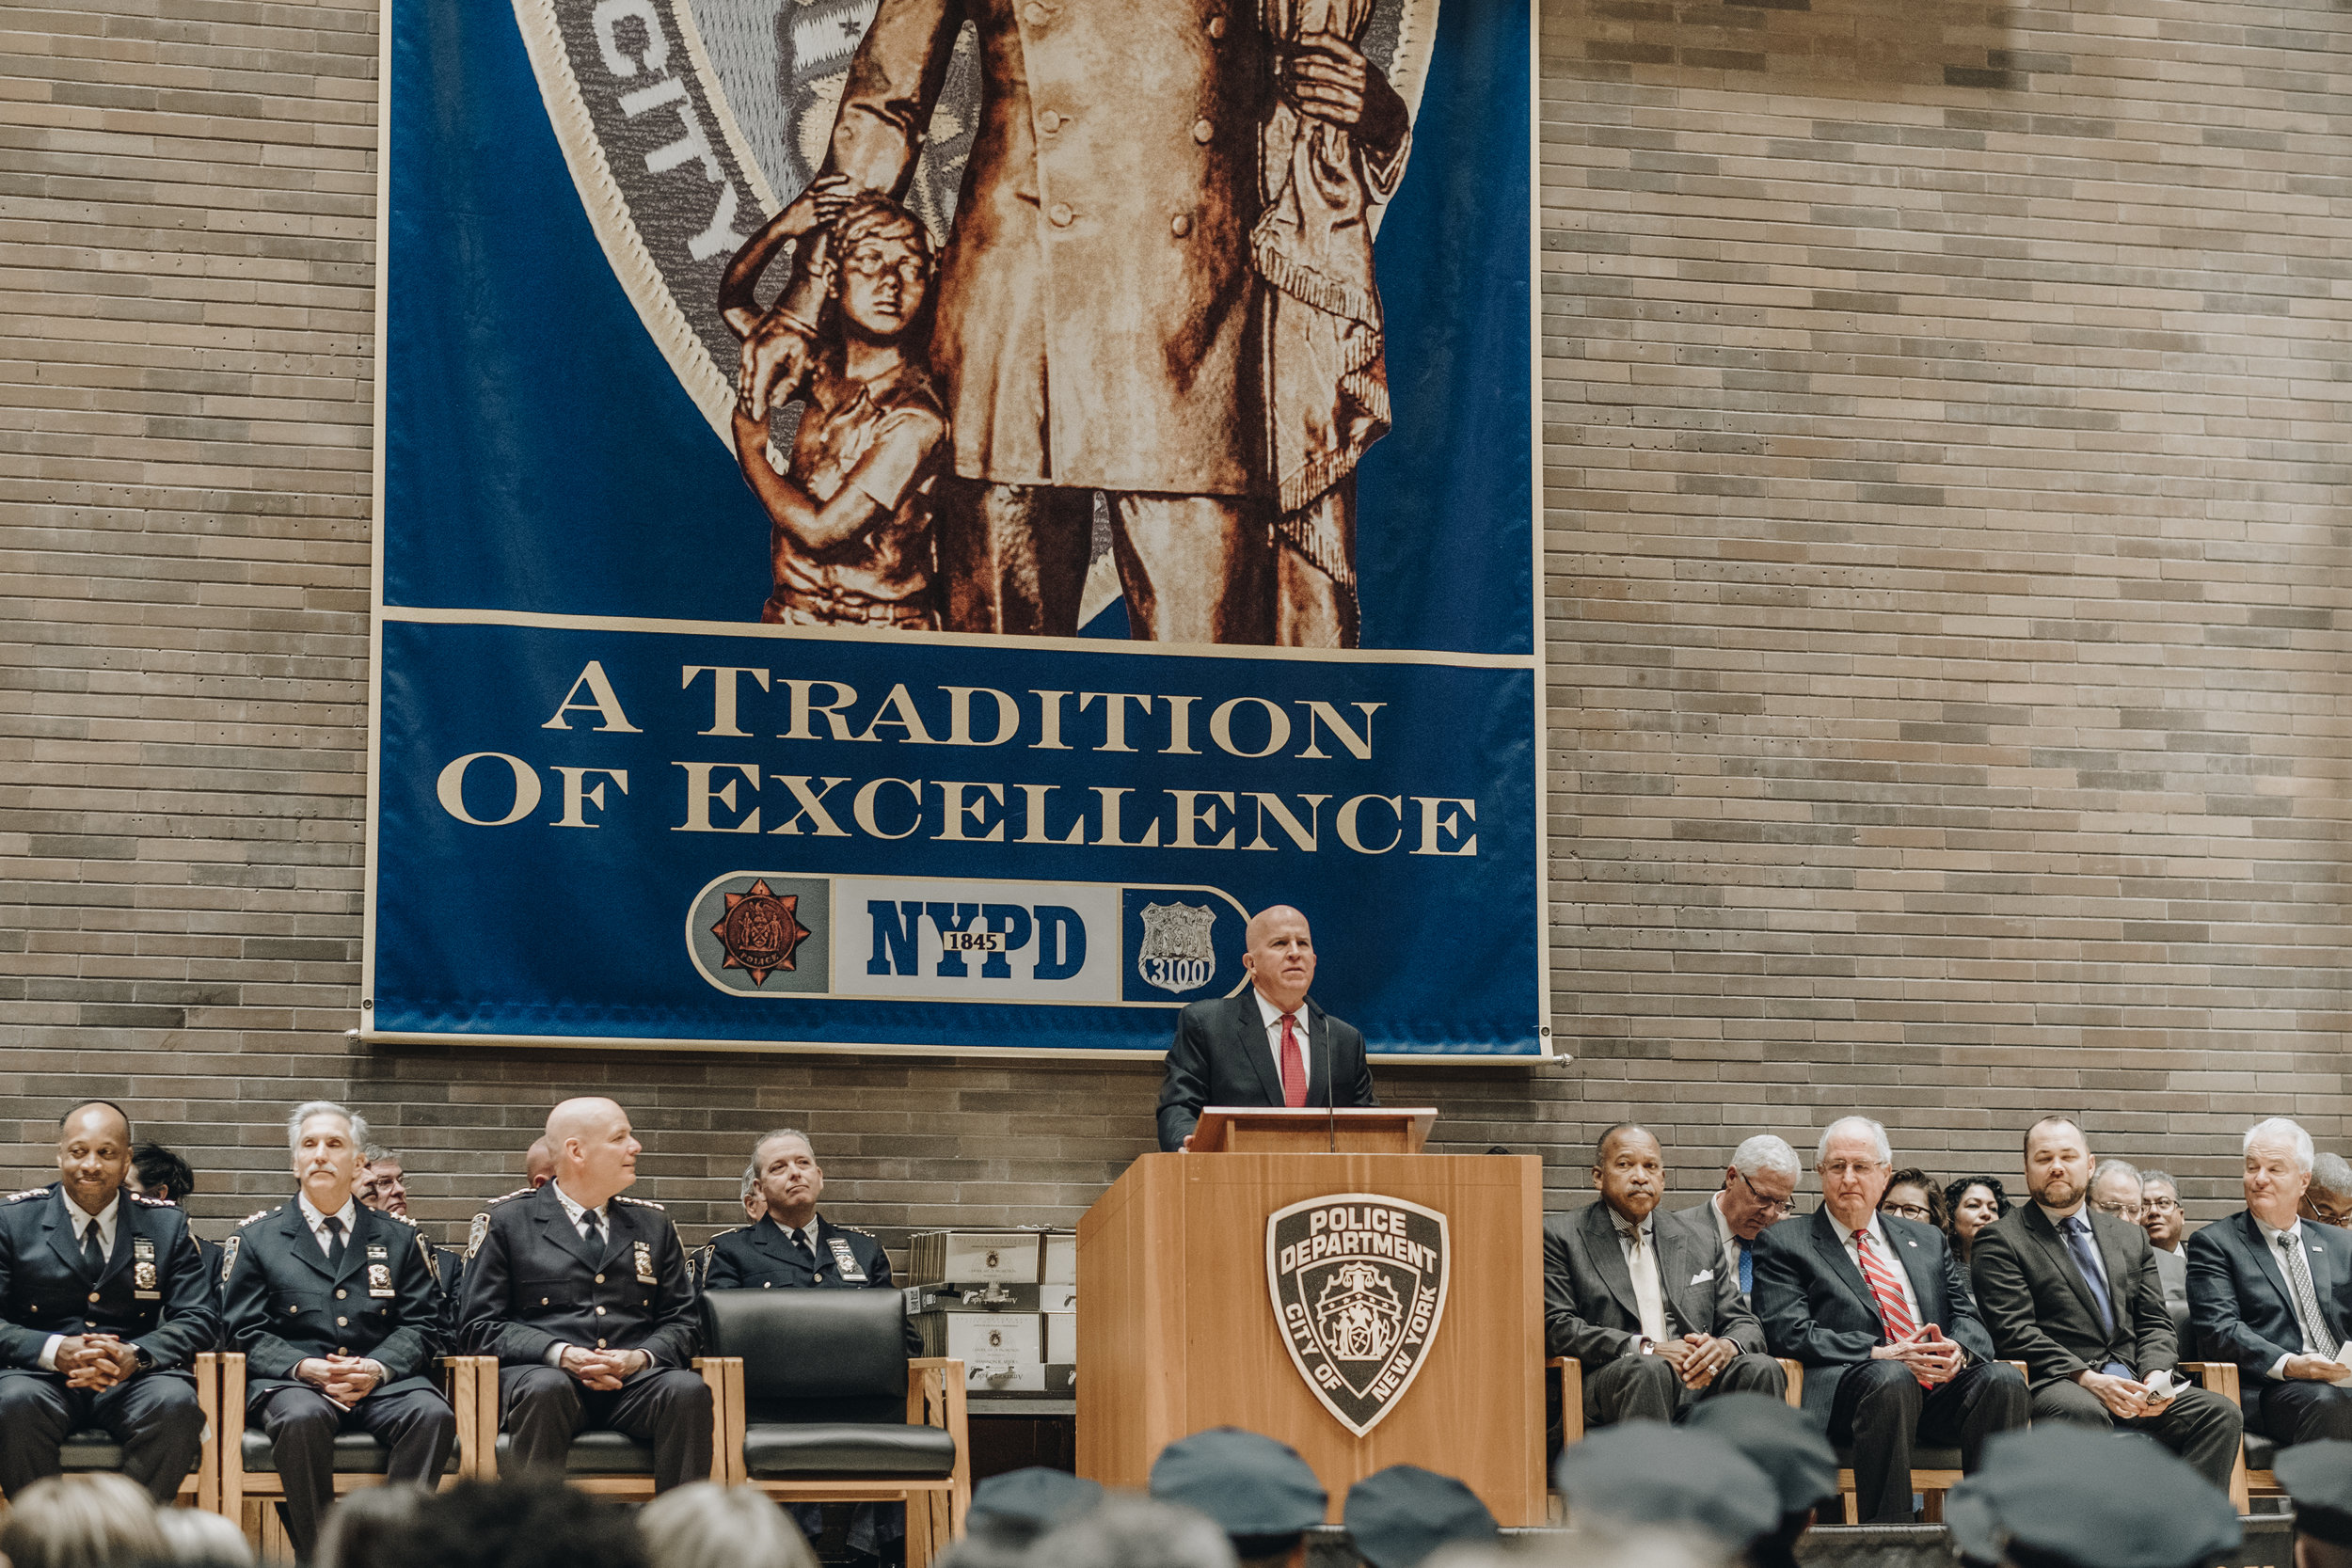 NYPD_Promotions-31.jpg